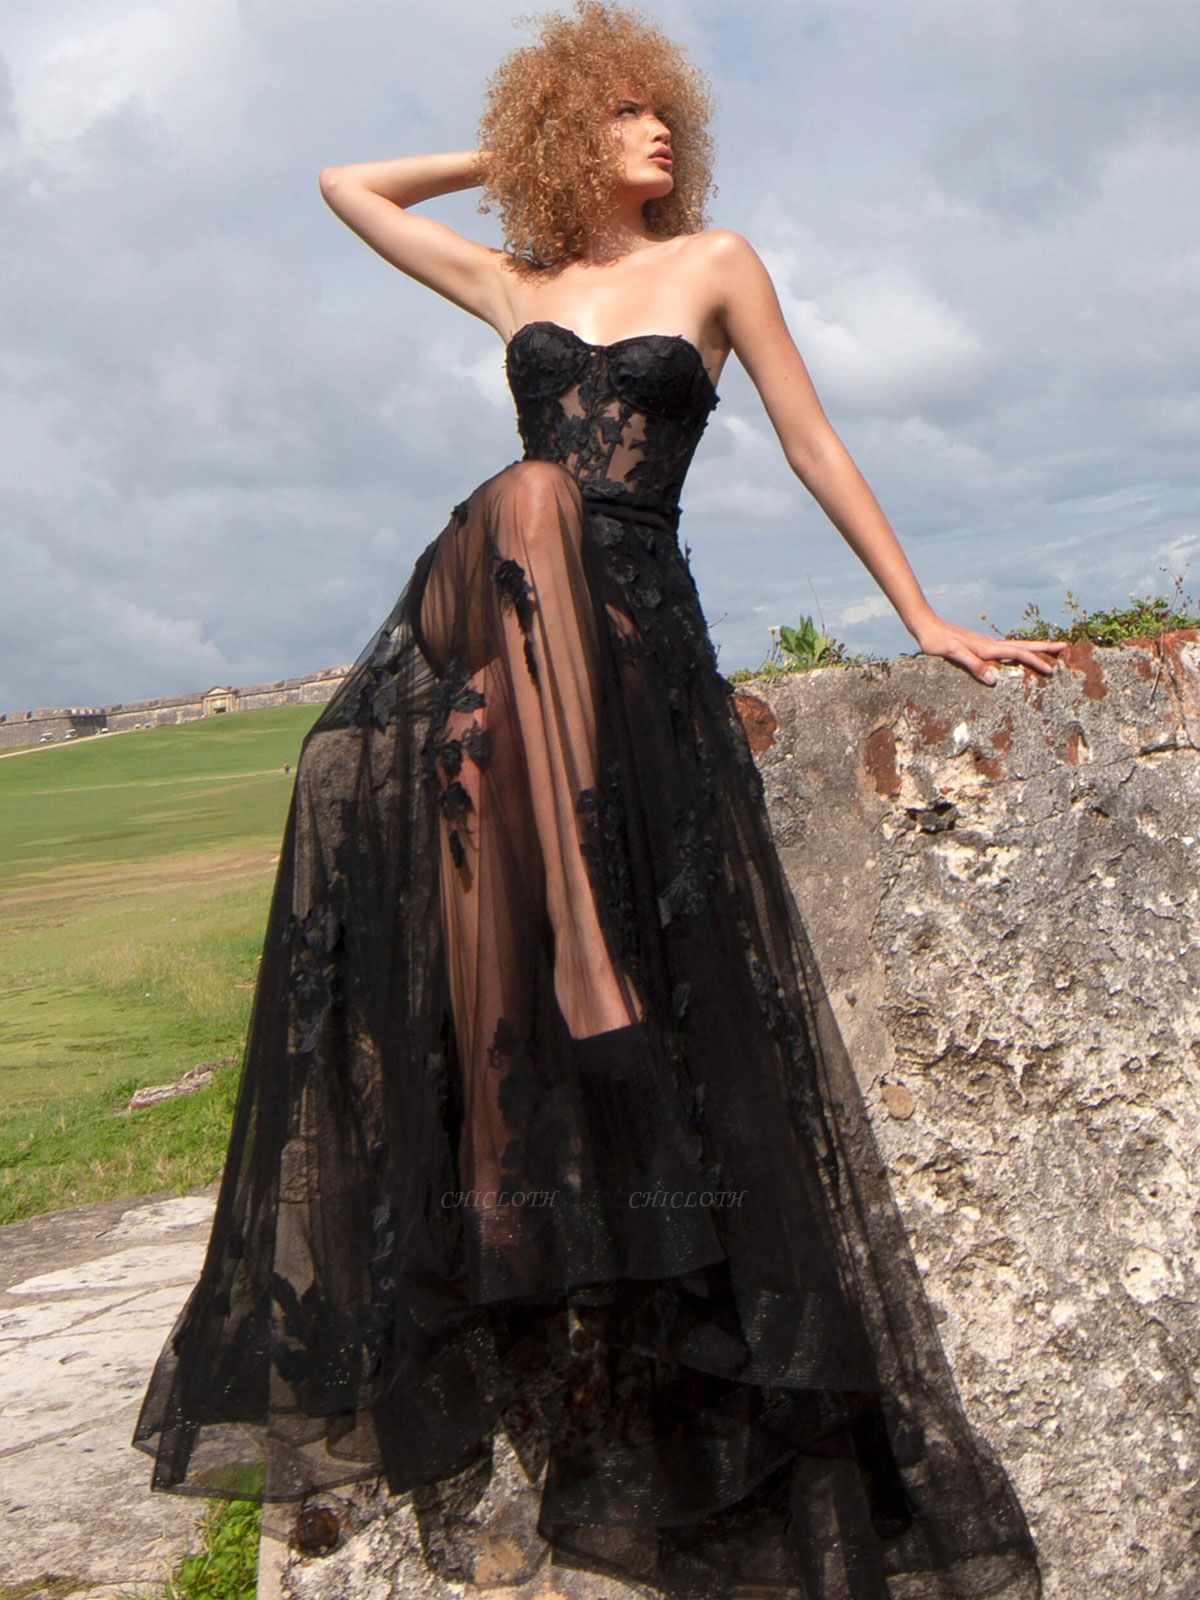 Black Gothic Bridal Dresses A-Line Floor-Length Strapless Neck Sleeveless Lace Bridal Gown